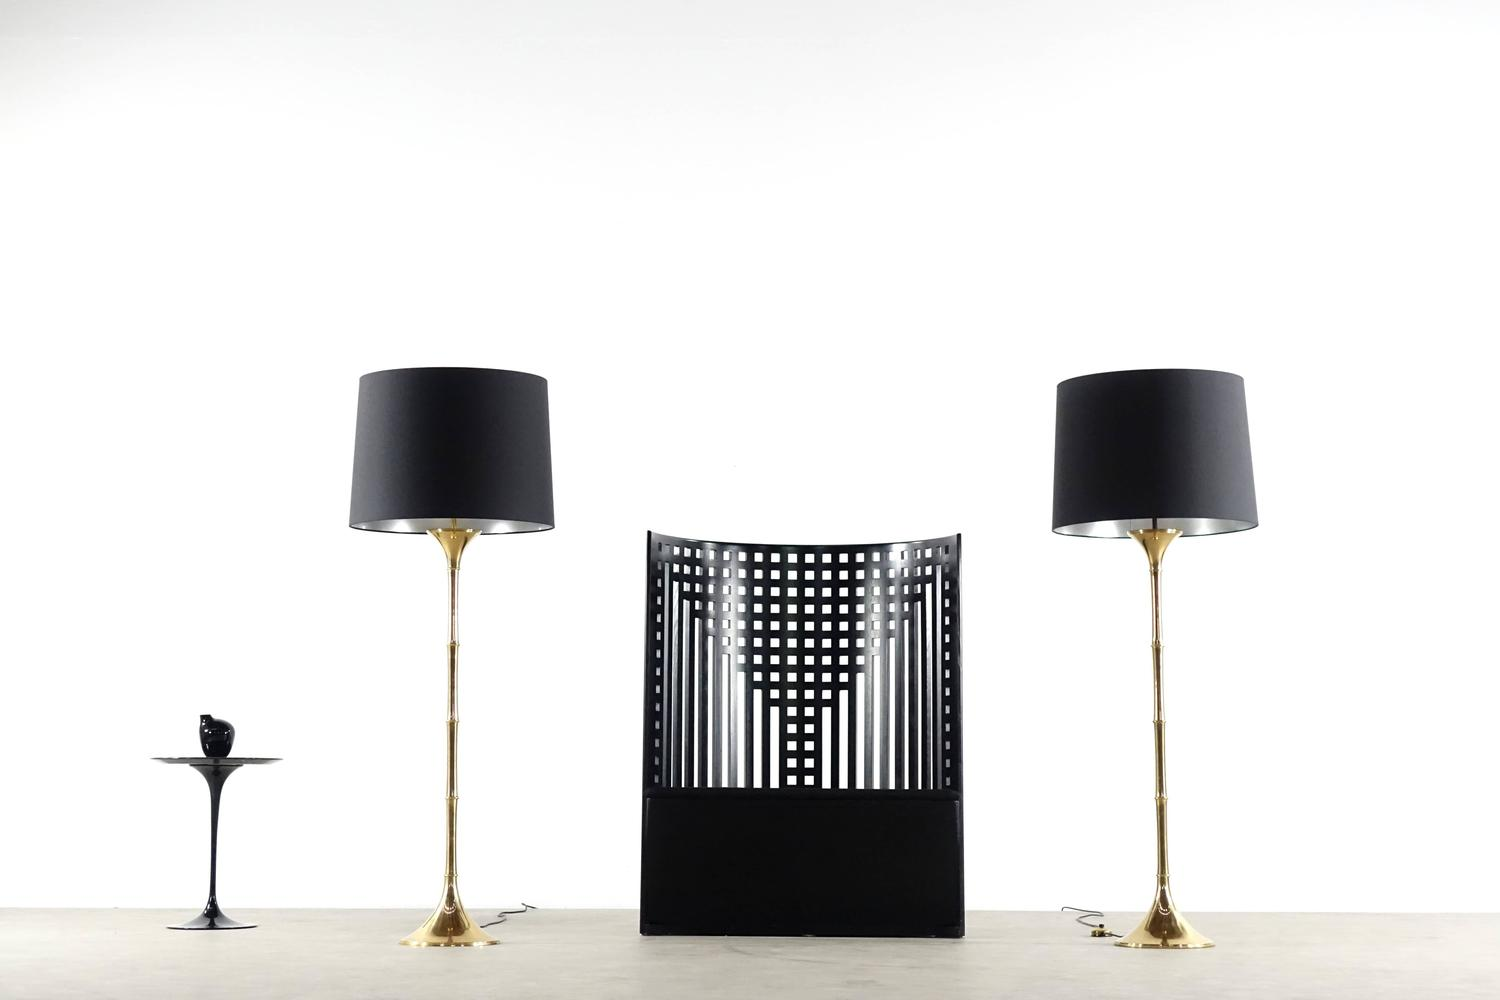 charles rennie mackintosh willow chair for cassina for sale at 1stdibs. Black Bedroom Furniture Sets. Home Design Ideas